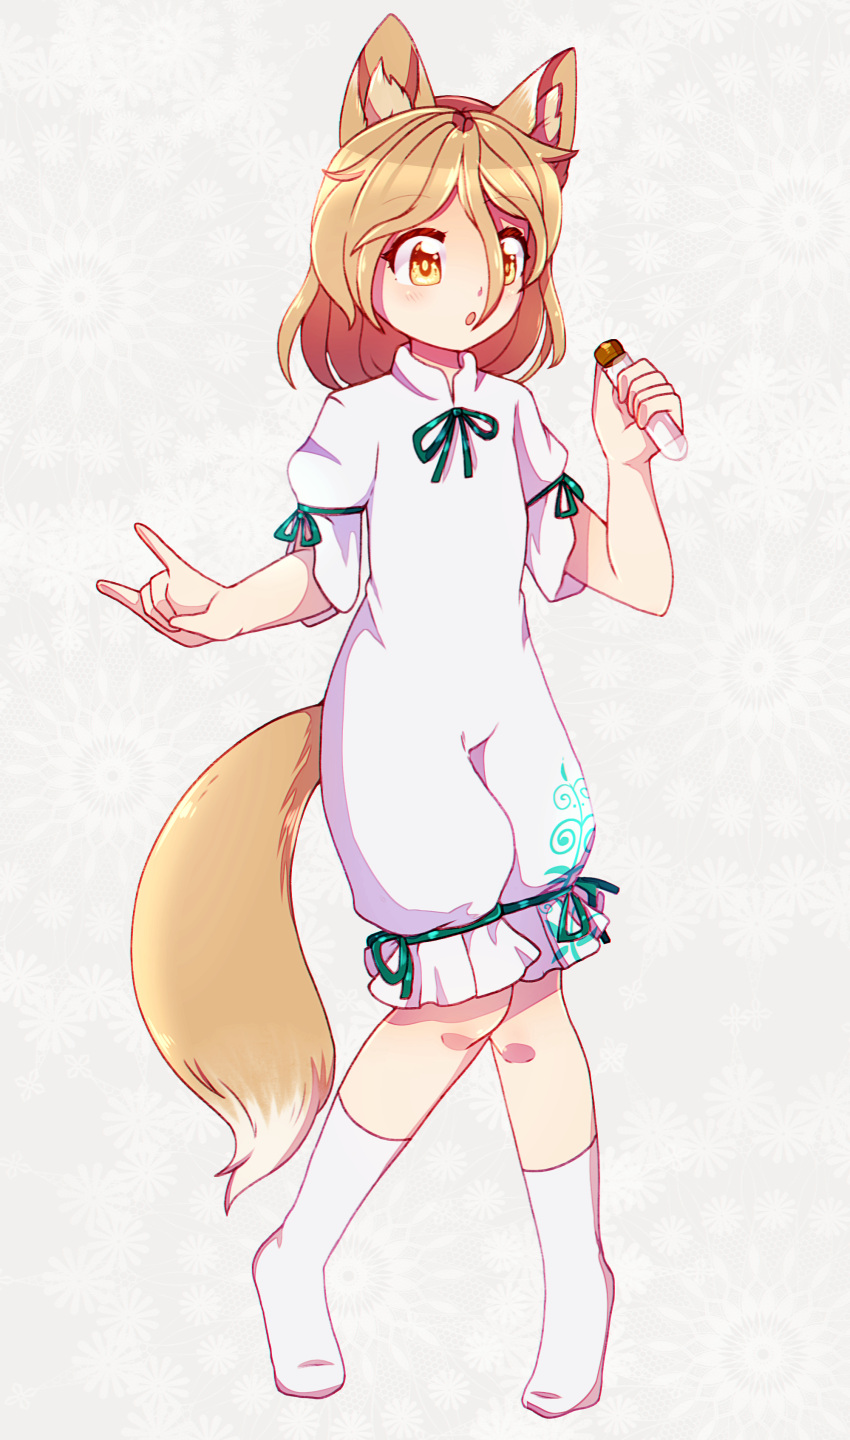 1girl :o absurdres animal_ear_fluff animal_ears arms_up blonde_hair calf_socks dungeon_toaster floral_background fox_ears fox_girl fox_shadow_puppet fox_tail full_body grey_background hair_between_eyes highres holding knees_together_feet_apart kudamaki_tsukasa looking_to_the_side no_shoes onesie ribbon shirt short_hair short_sleeves solo standing tail thigh_ribbon touhou vial white_legwear white_shirt yellow_eyes